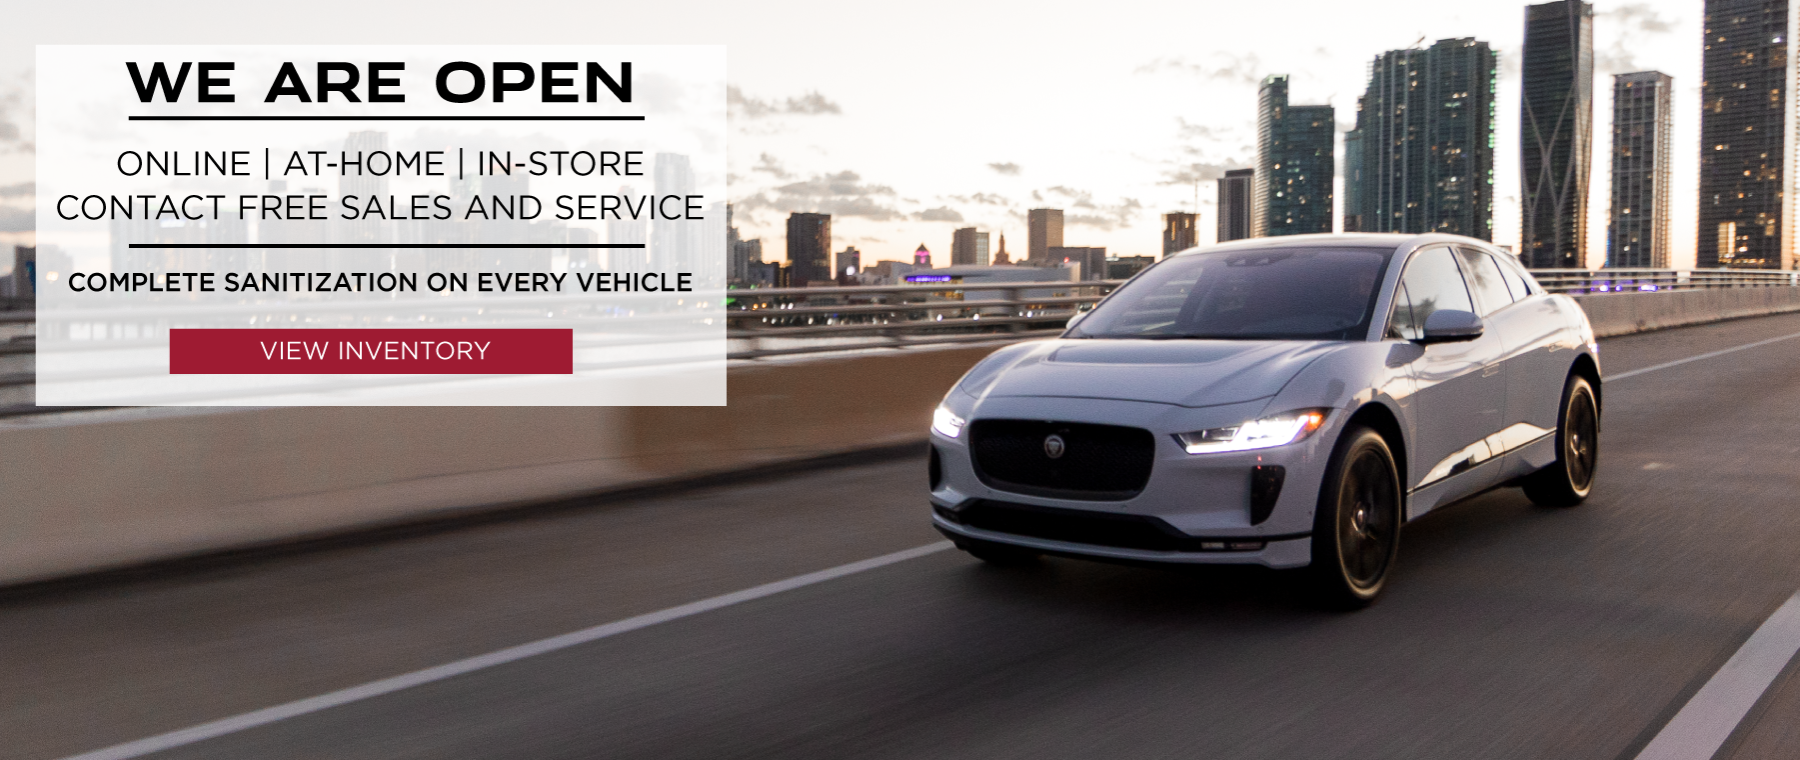 WE ARE OPEN. ONLINE. IN-STORE. CAR SHOPPING. CONTACT-FREE DELIVERY. TEST DRIVES. VEHICLE TRADE-INS. SERVICE PICK-UP AND DROP-OFF. COMPLETE SANITATION ON EVERY VEHICLE. VIEW OUR SPECIALS. RED JAGUAR I-PACE DRIVING UP ROAD IN CITY.